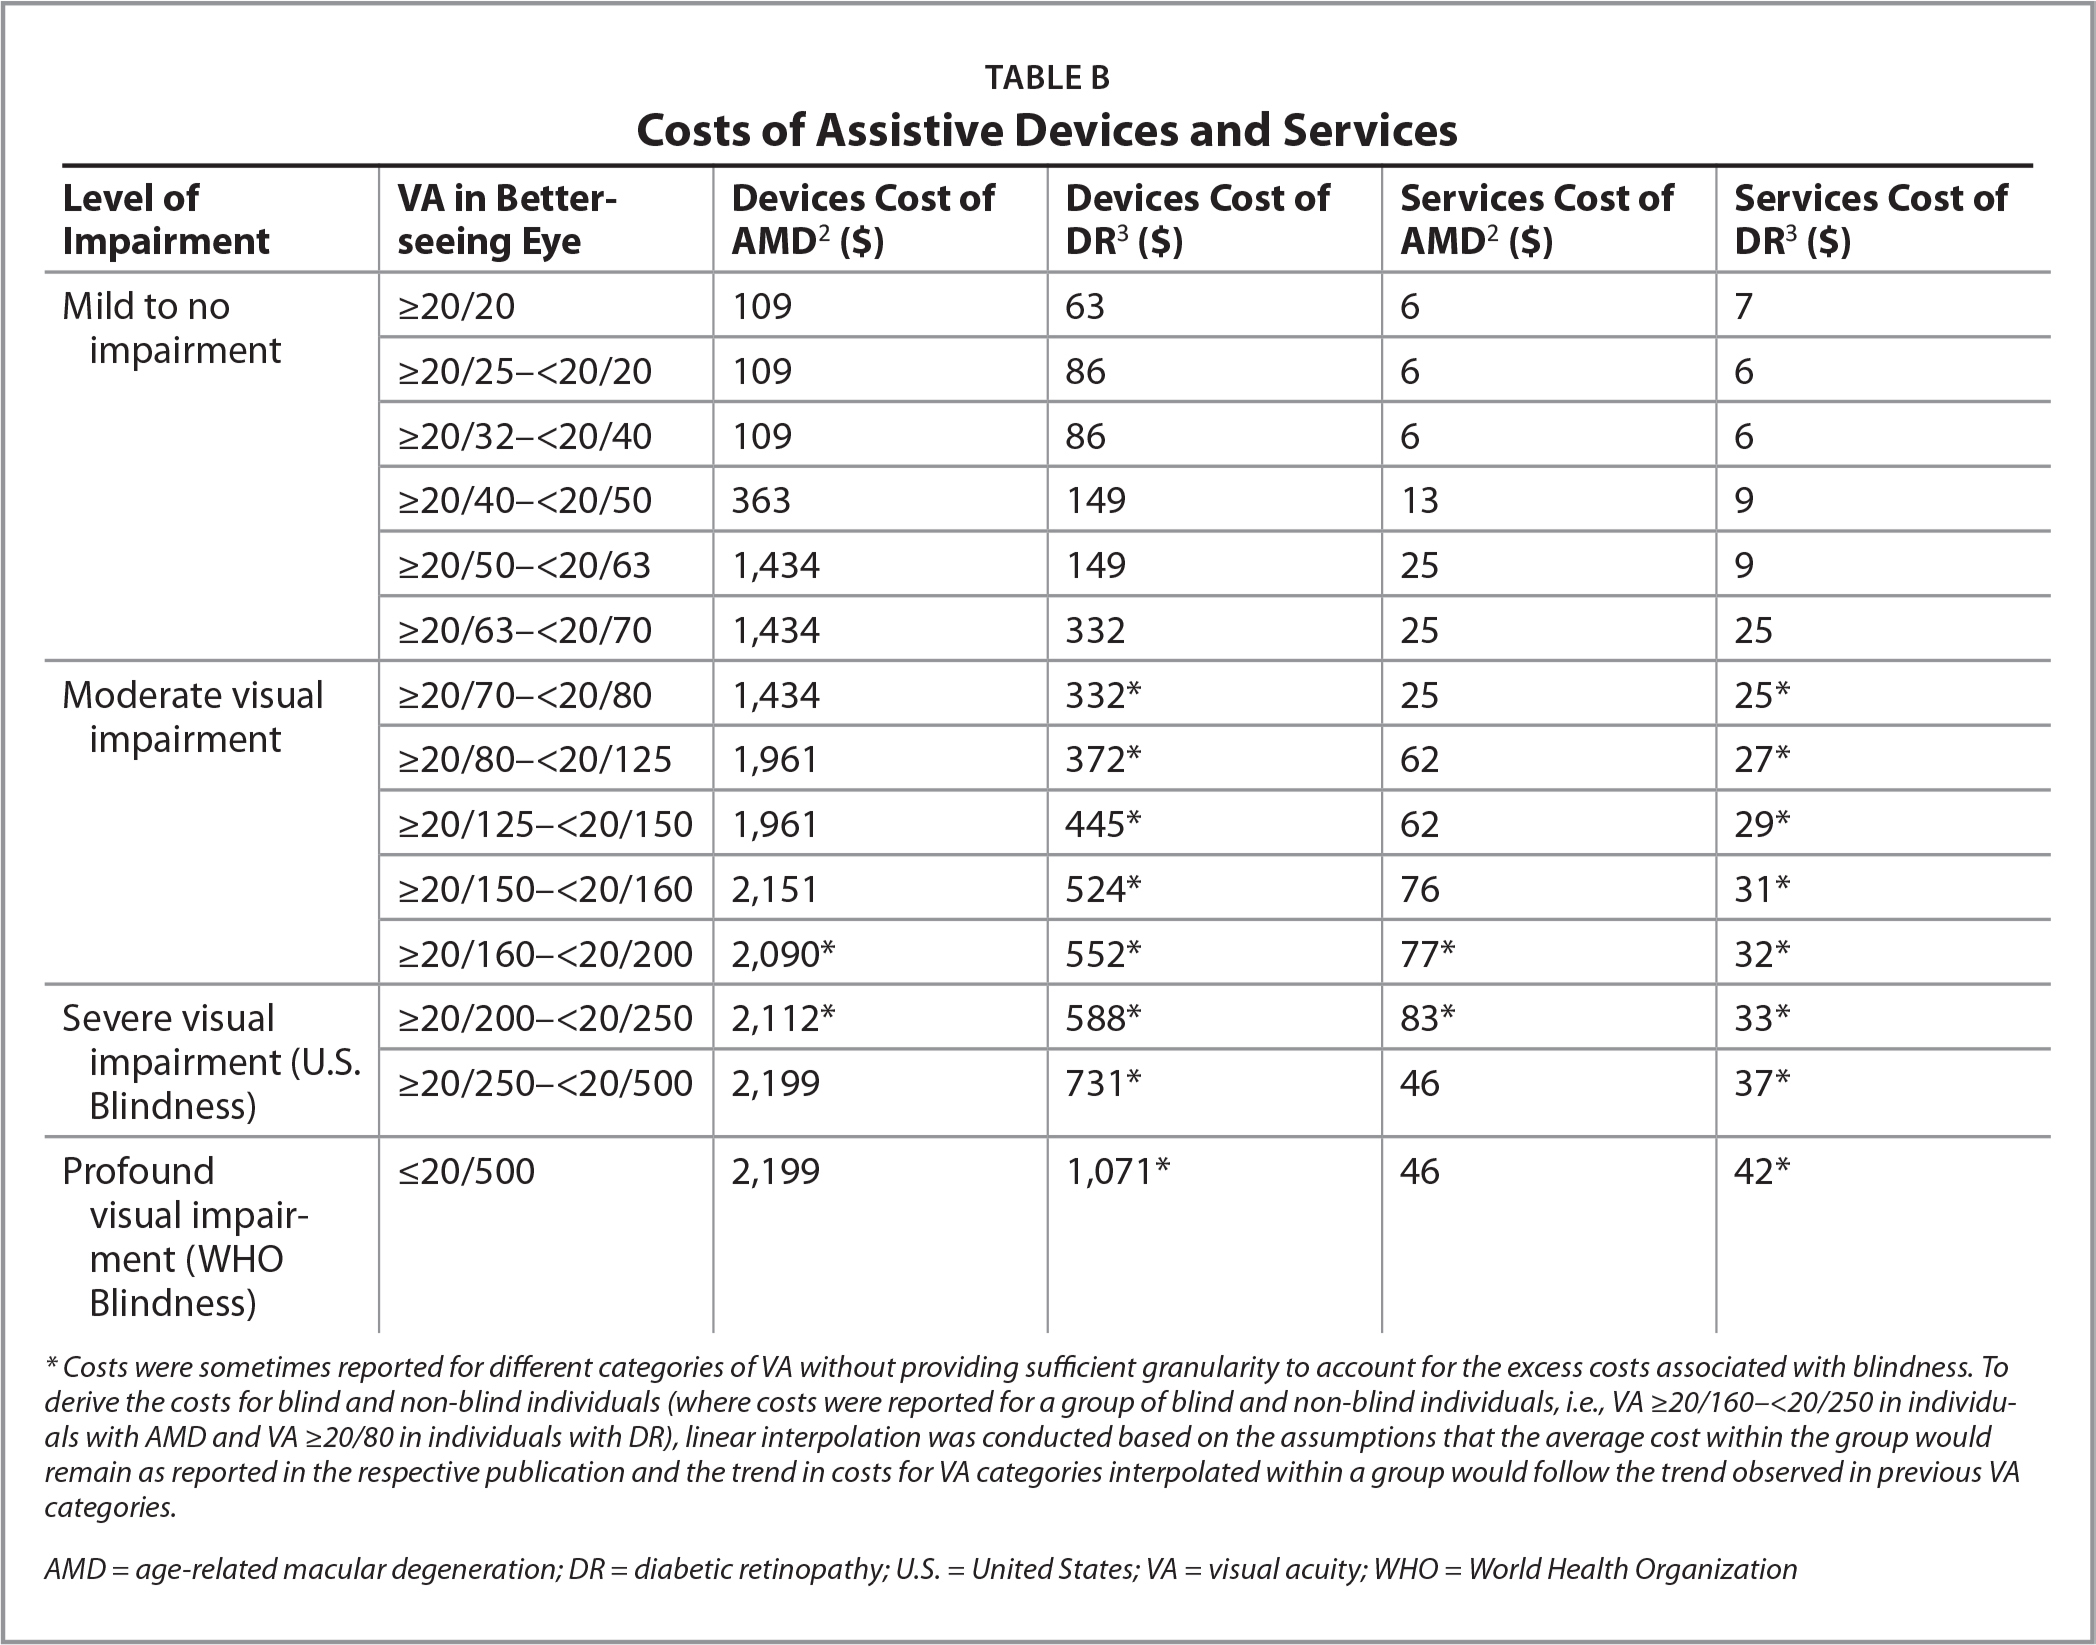 Costs of Assistive Devices and Services